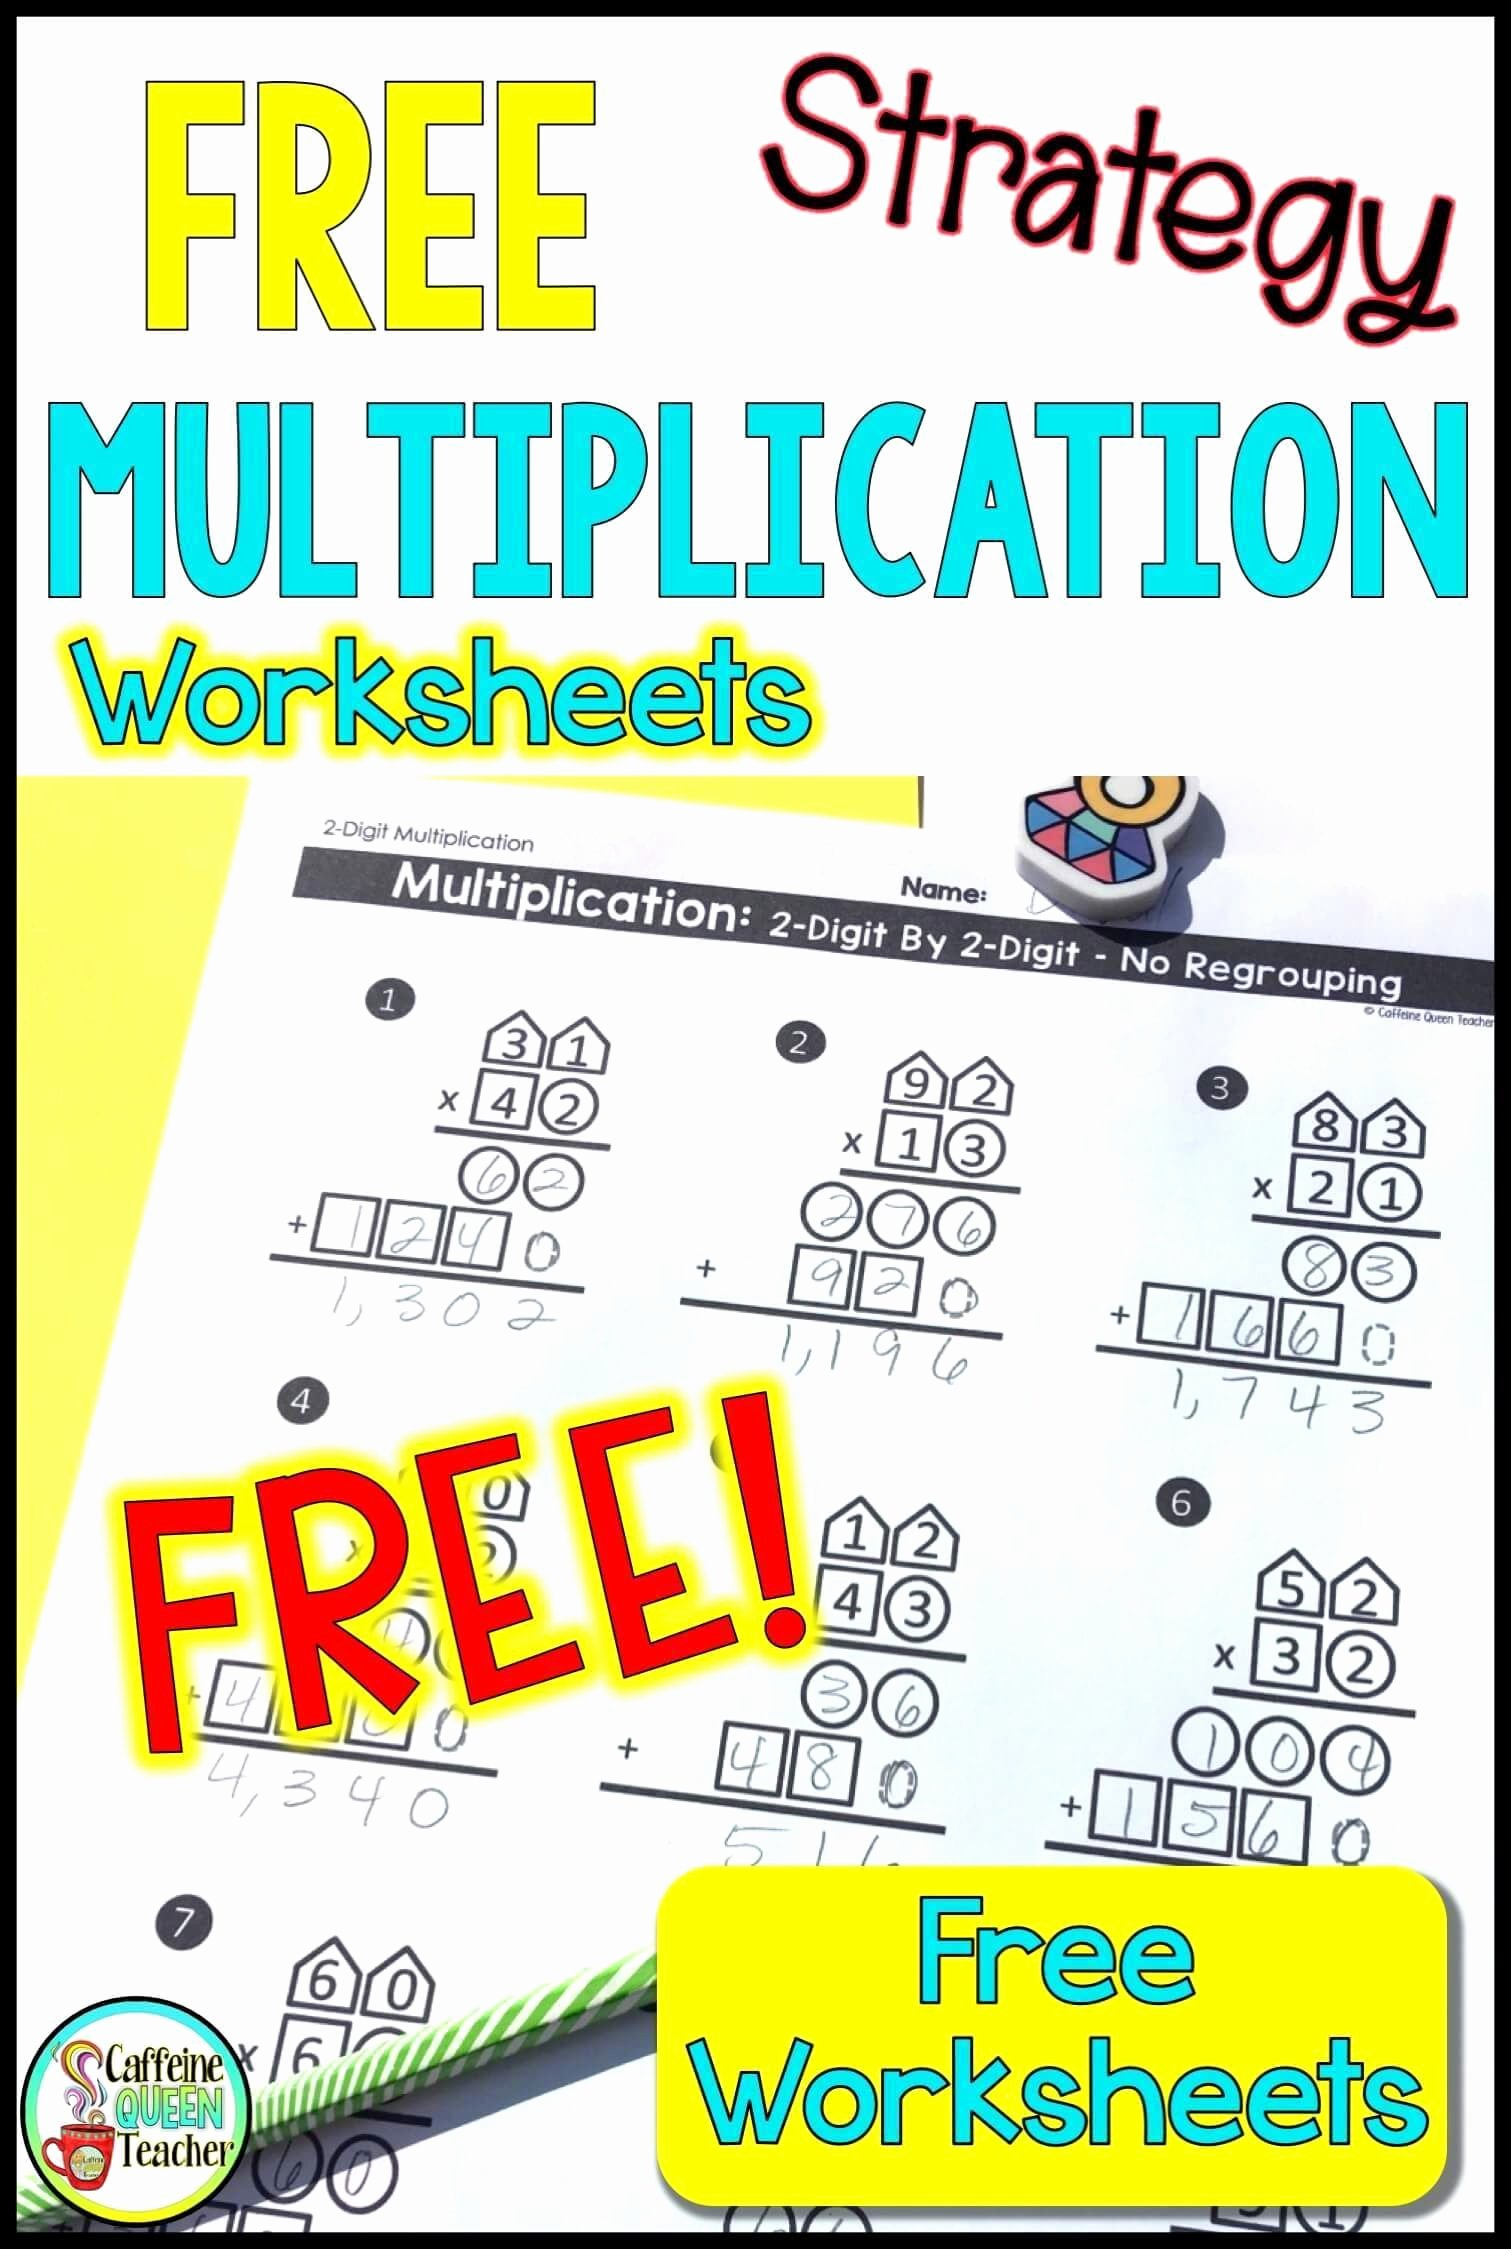 Multi Digit Multiplication Worksheets Unique 2 Digit Multiplication Worksheets Differentiated